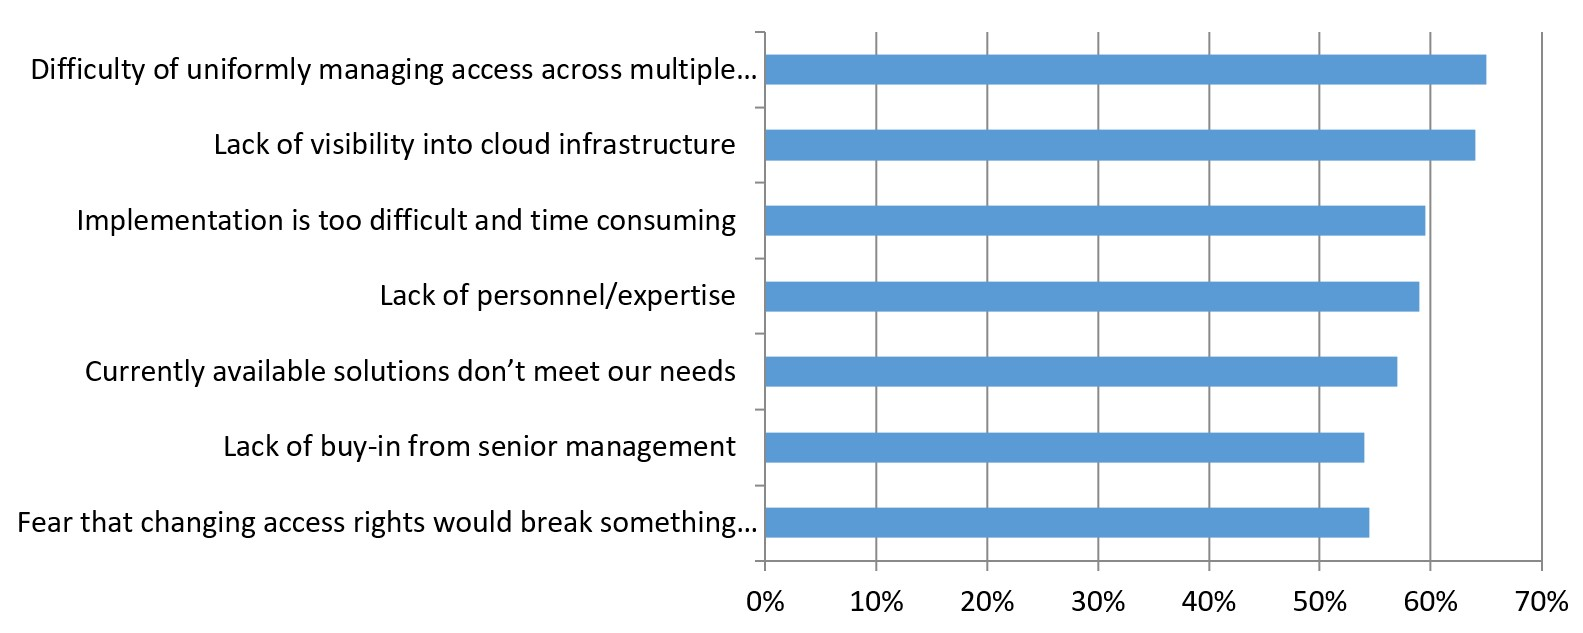 Figure 8 - Top Barriers to Implementing Least Privilege Access